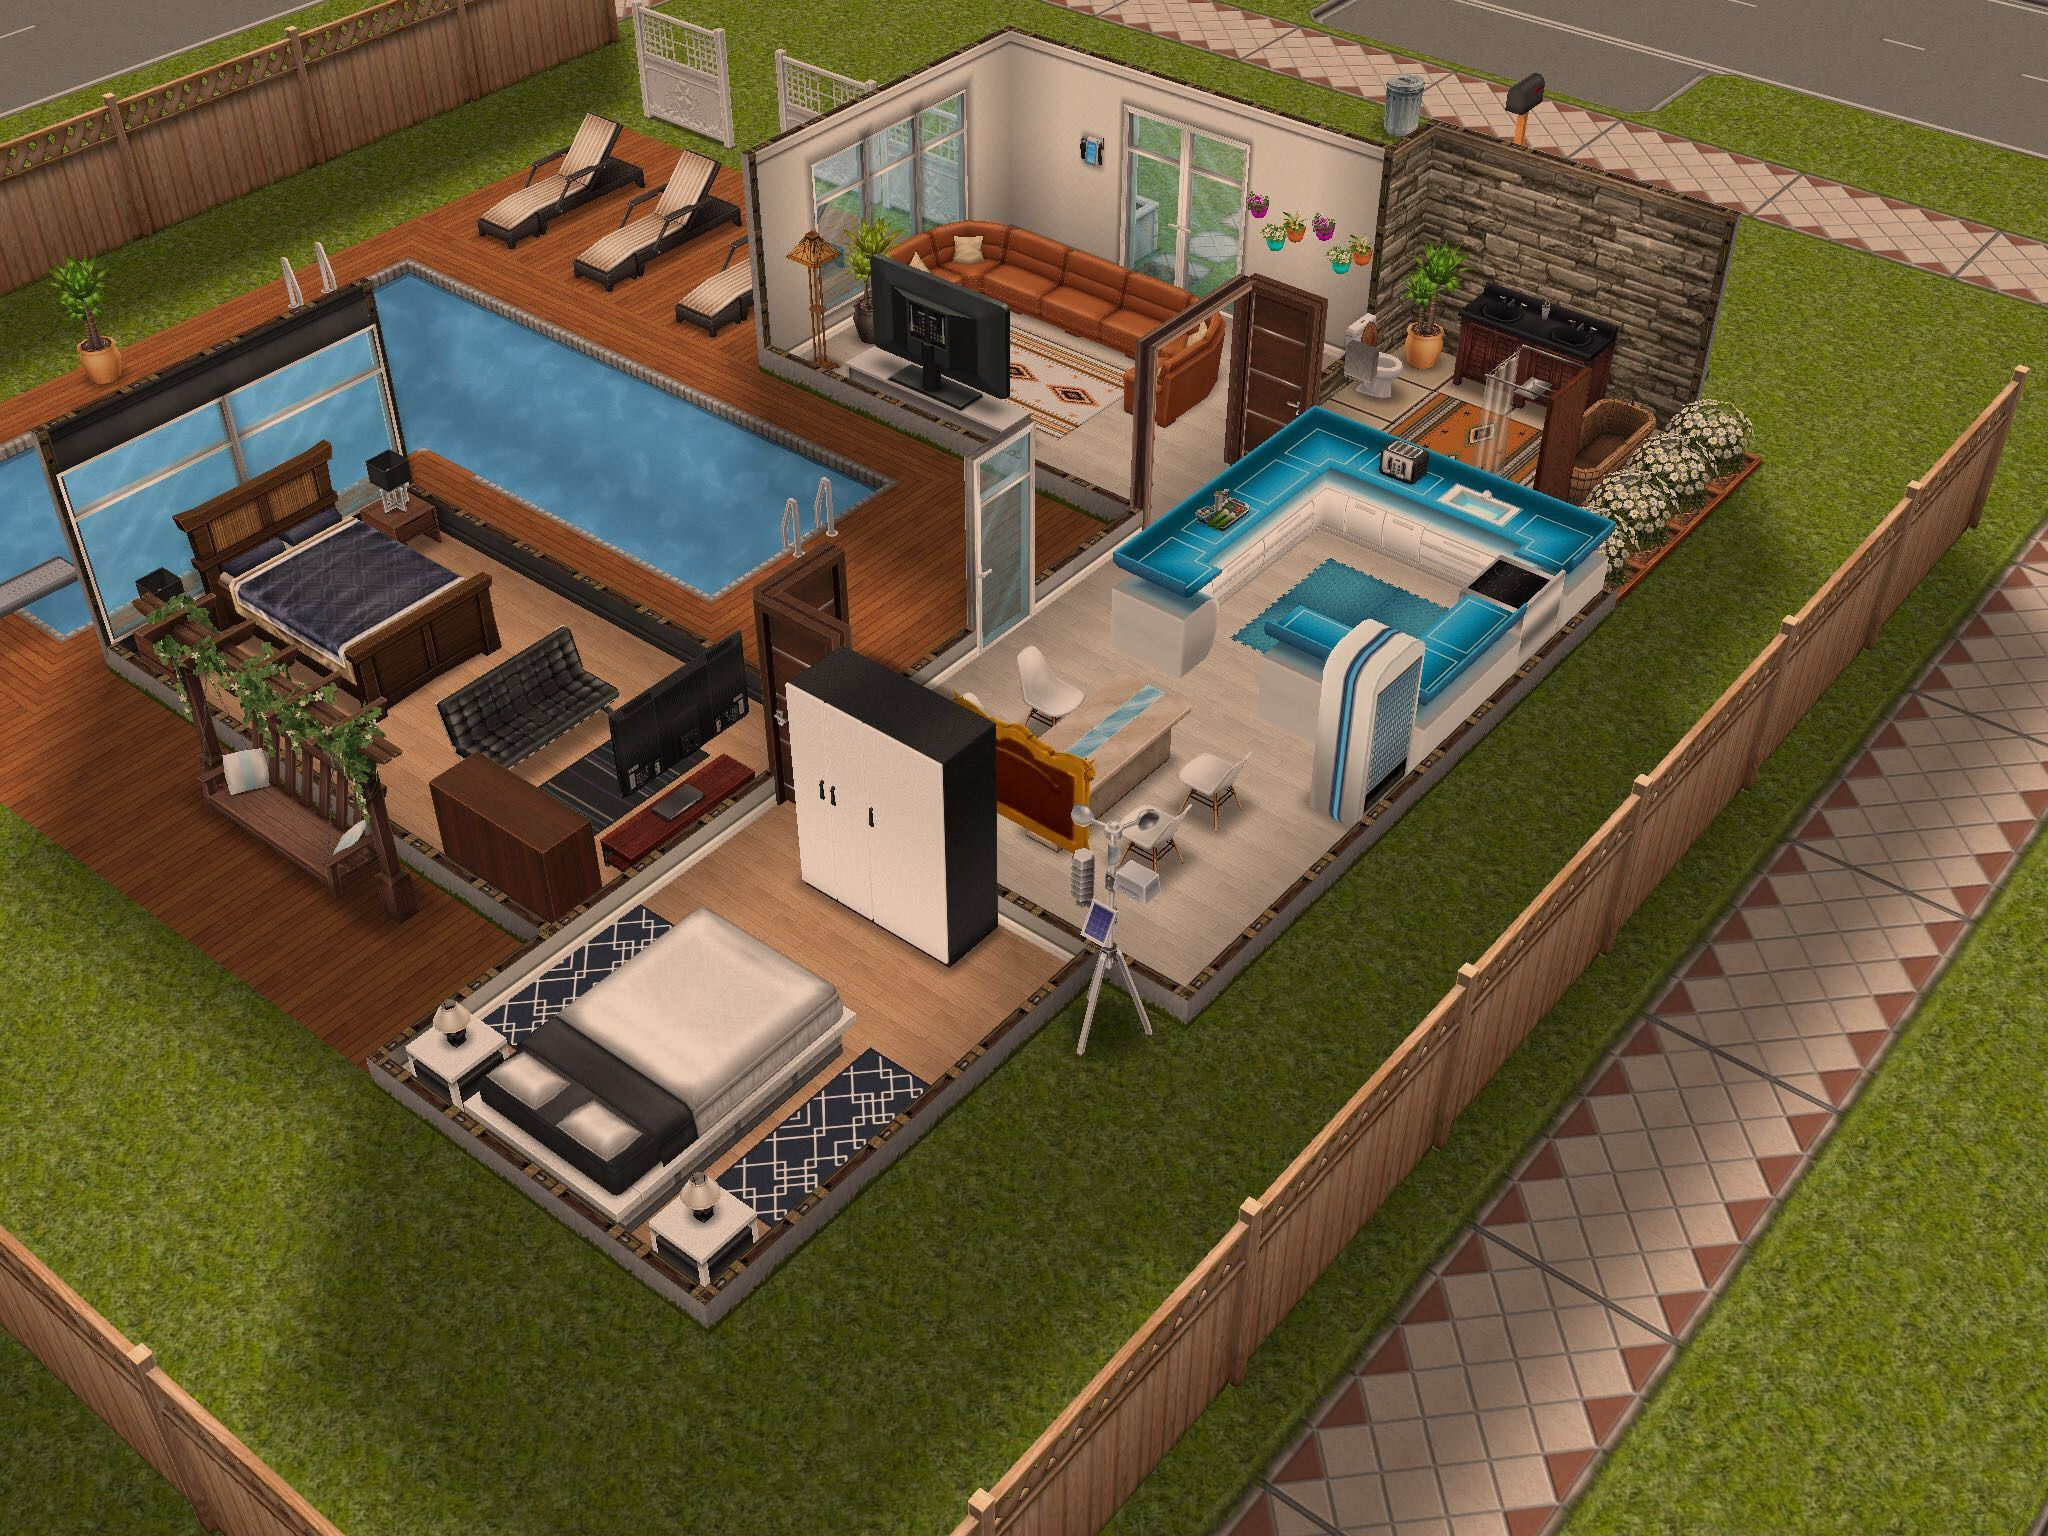 The Sims Free Play Modern House 1 Sims Thesims House Ideas Maison Sims Sims Maison